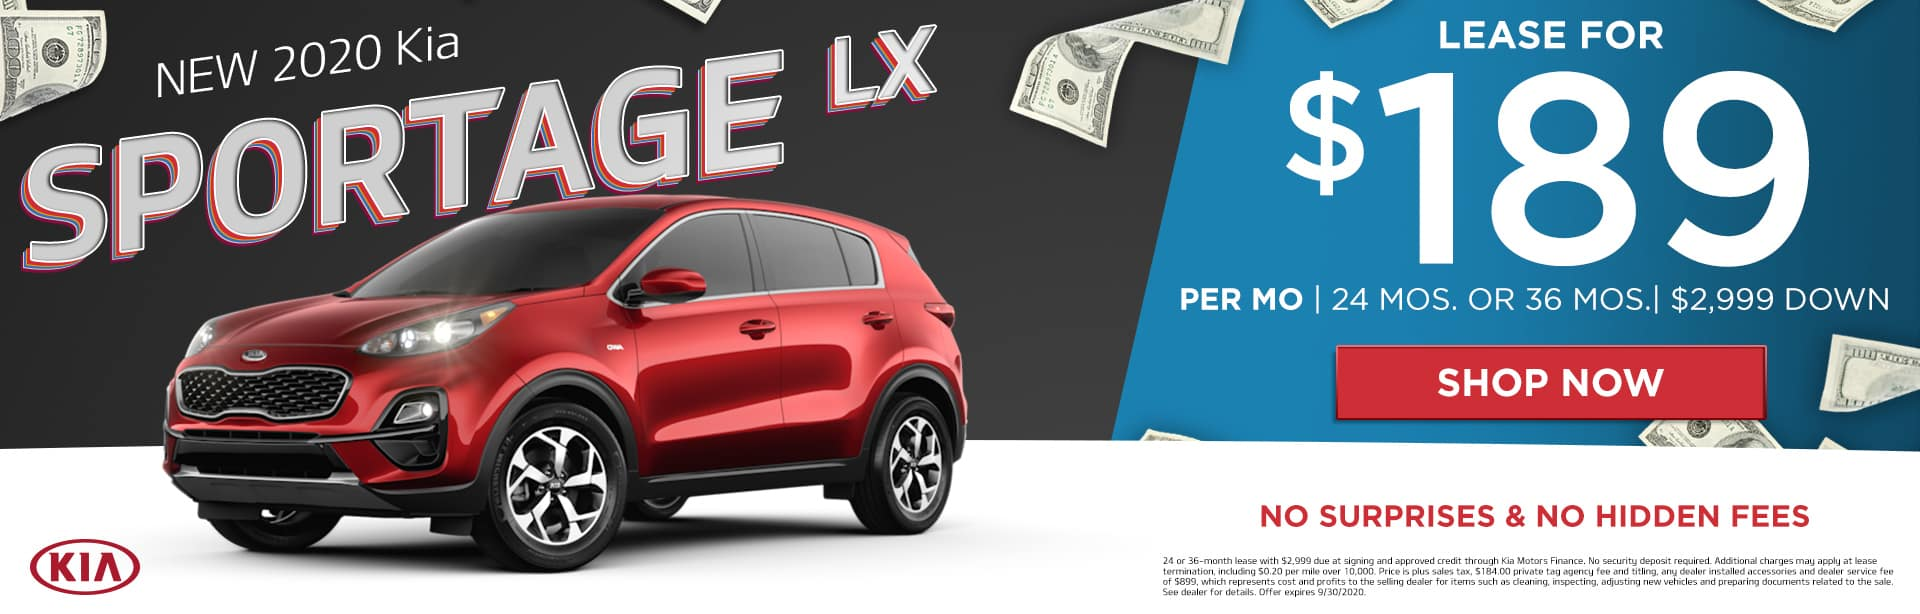 New 2020 Kia Sportage LX | Lease For $189 Per Month | 24 Months or 36 Months | $2,999 Down | No Surprises & No Hidden Fees